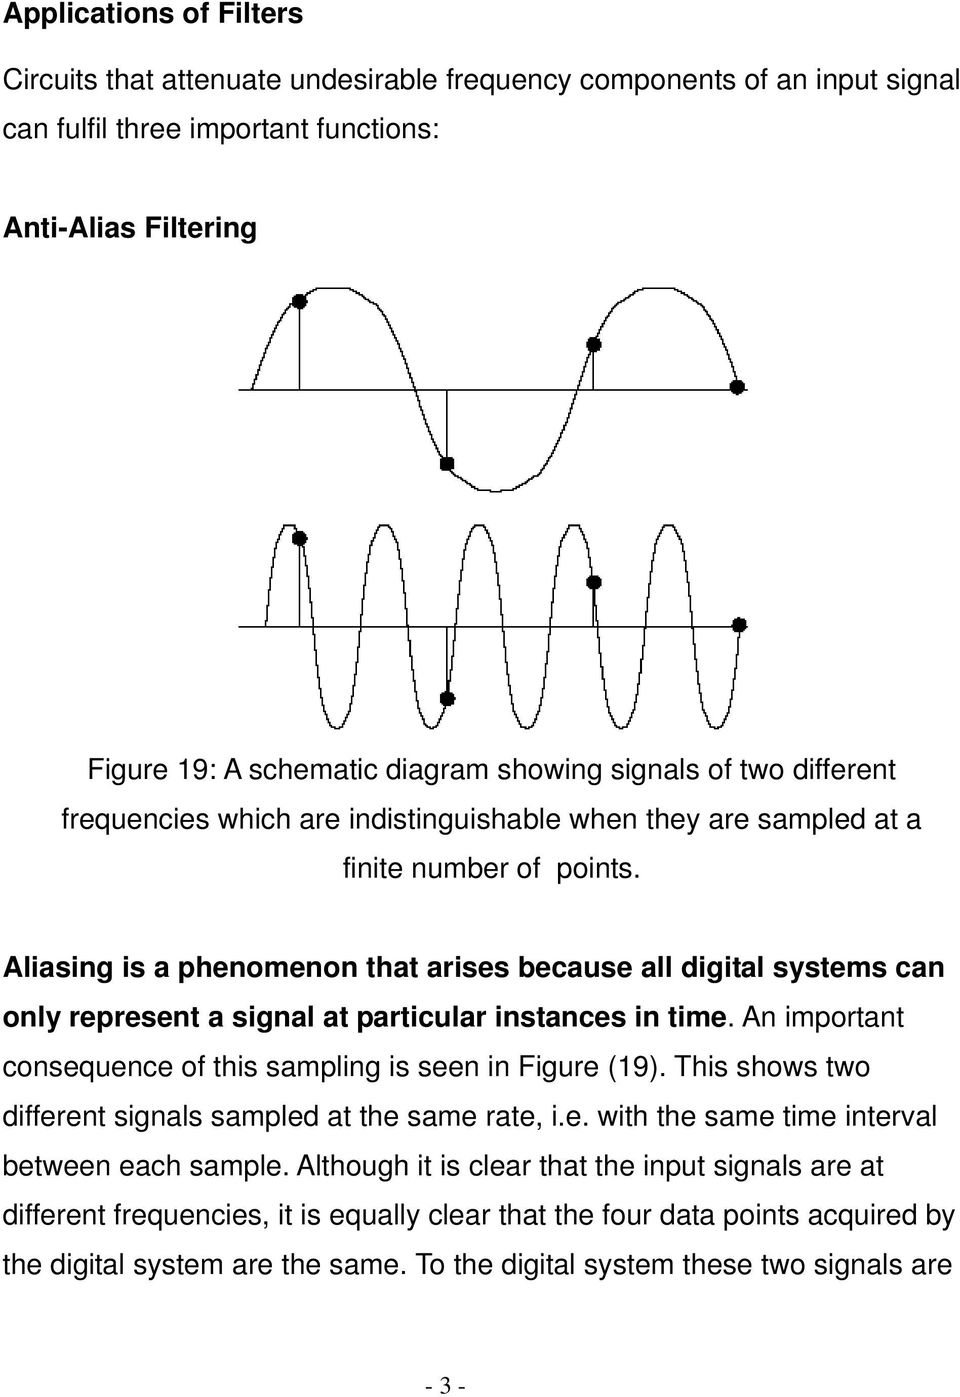 Aliasing is a phenomenon that arises because all digital systems can only represent a signal at particular instances in time. An important consequence of this sampling is seen in Figure (19).